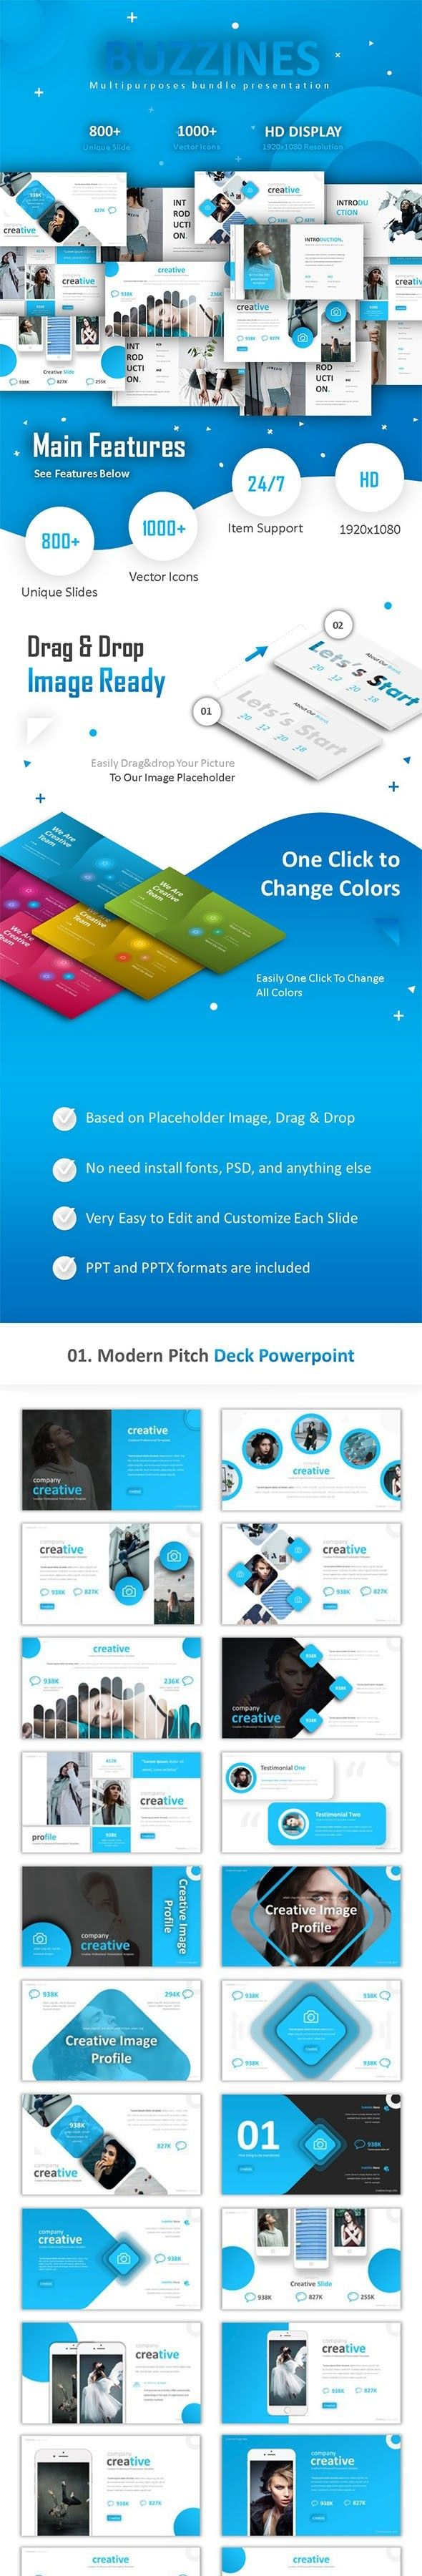 Pin By Professional Web Designer Roger Wilsa On Custom Powerpoint